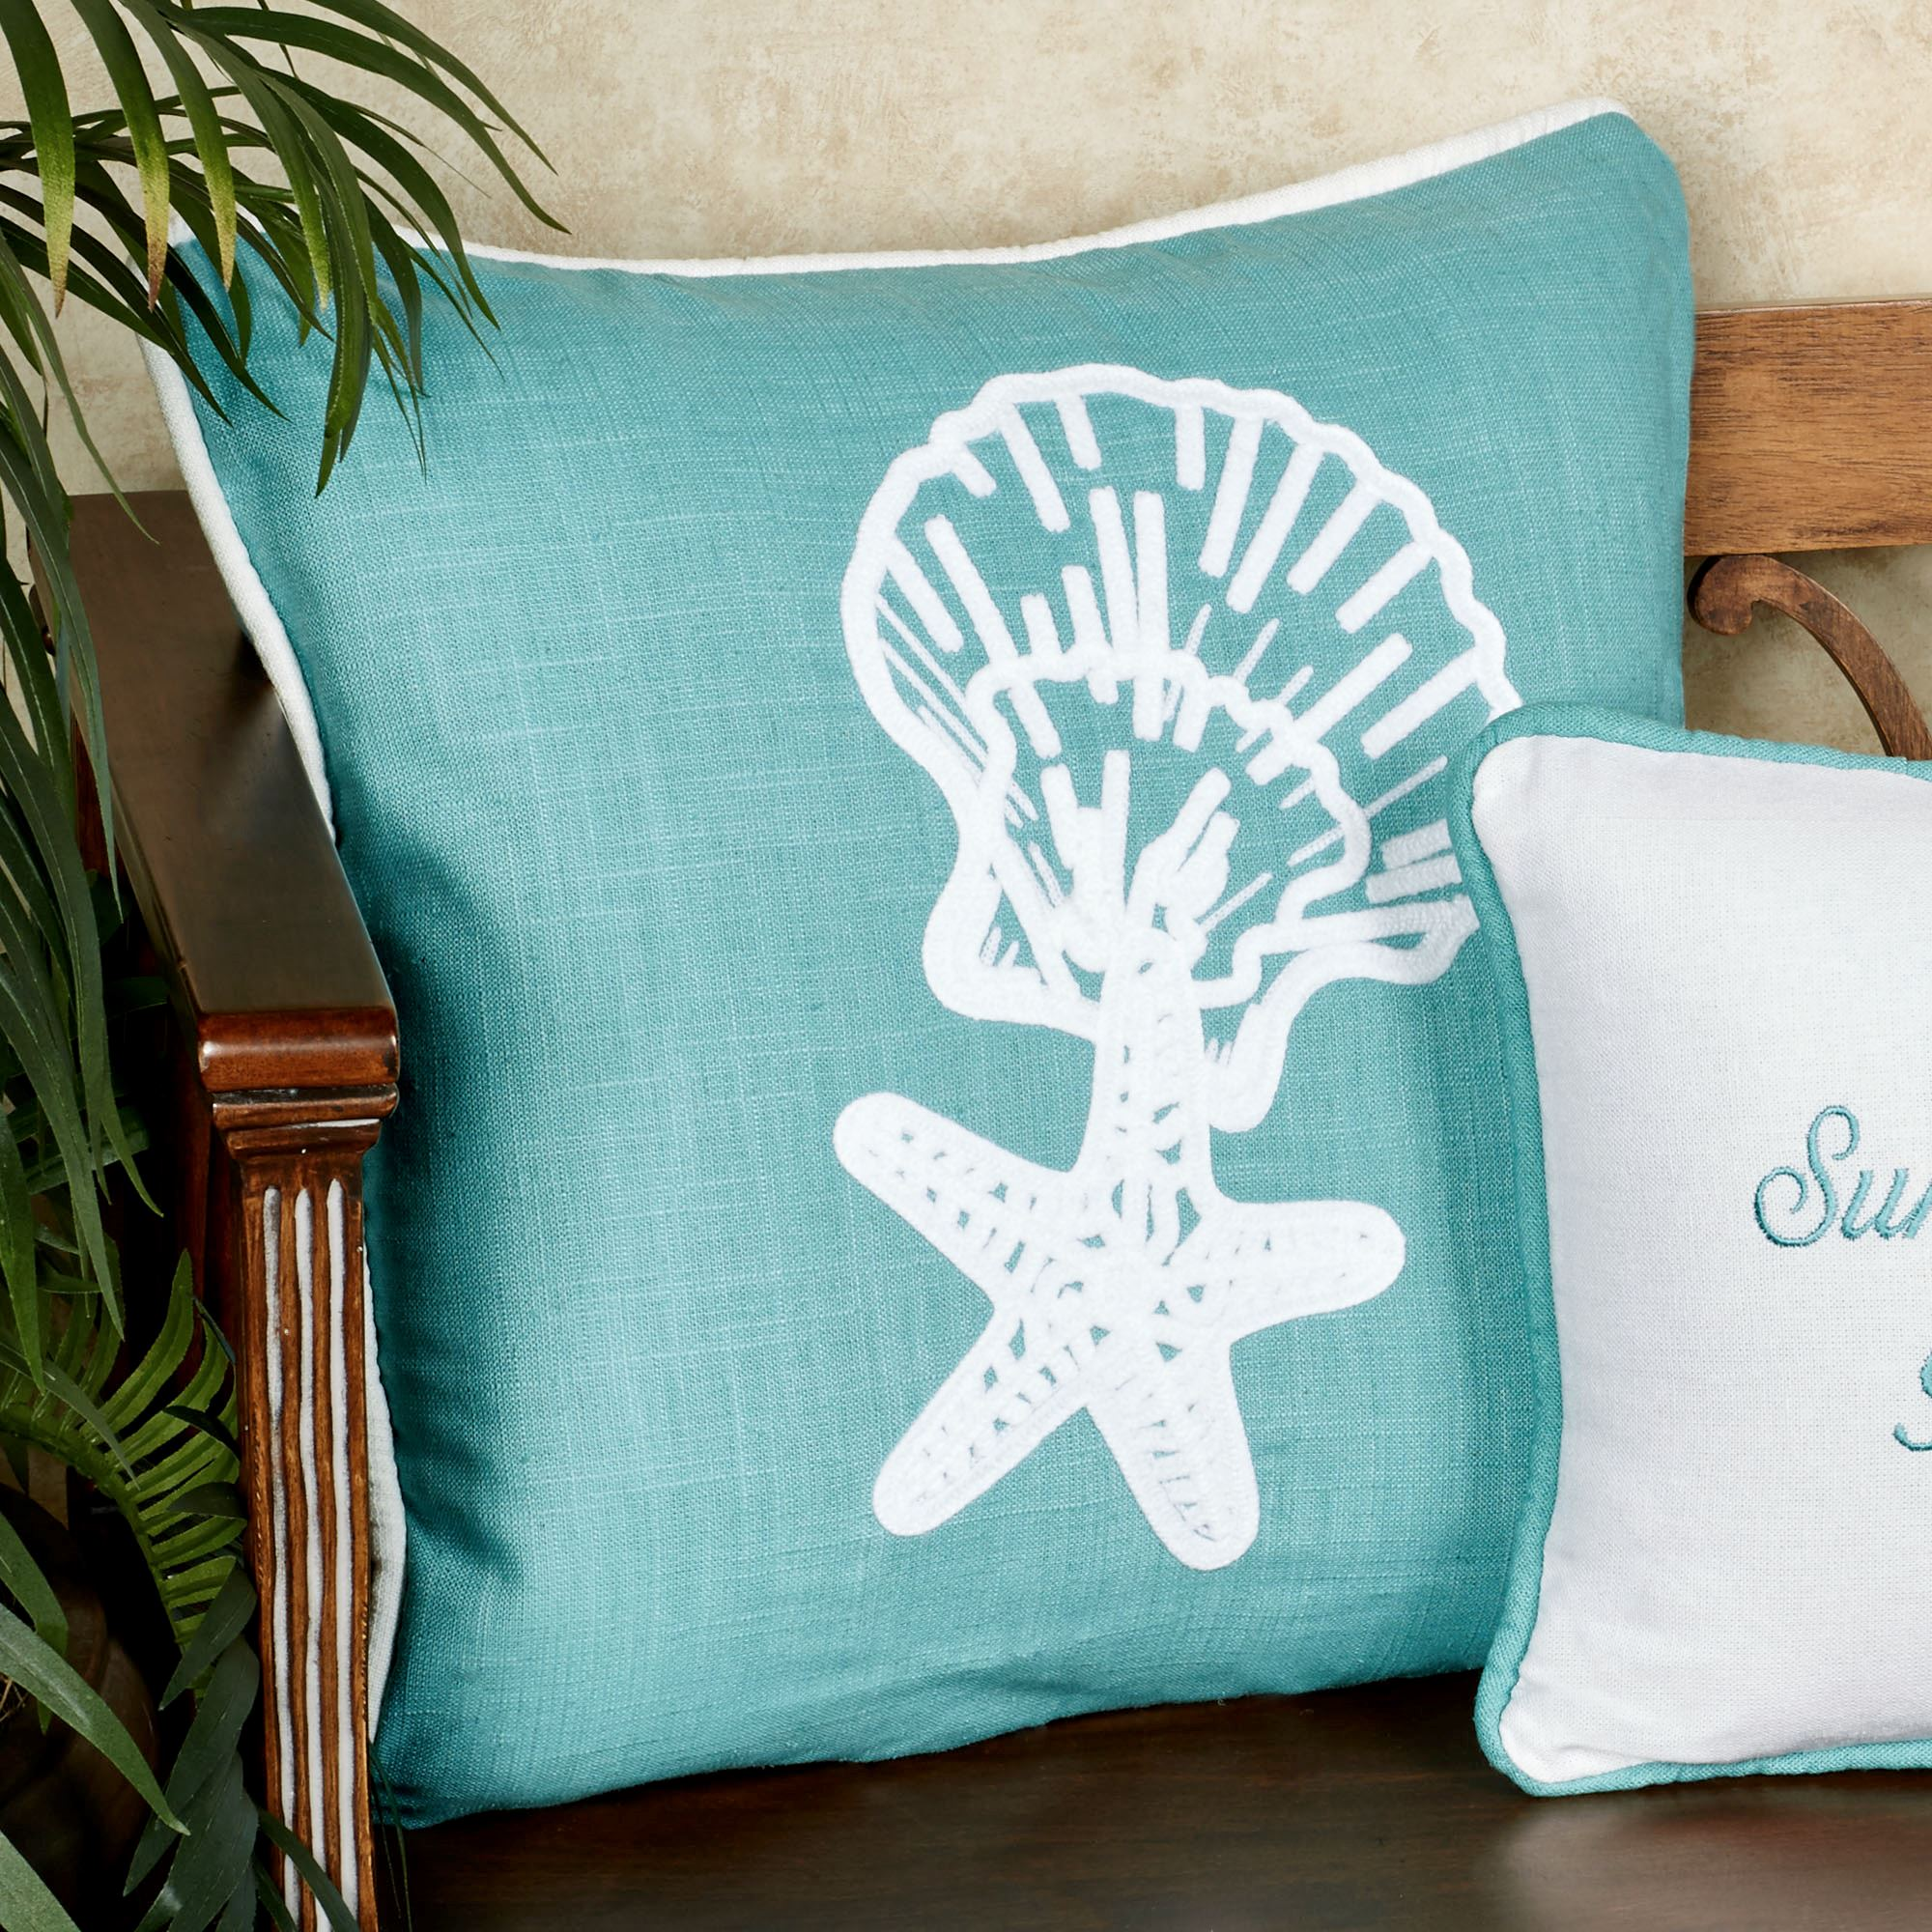 sea throw pillow sew pillows diy and homegrown beach sand